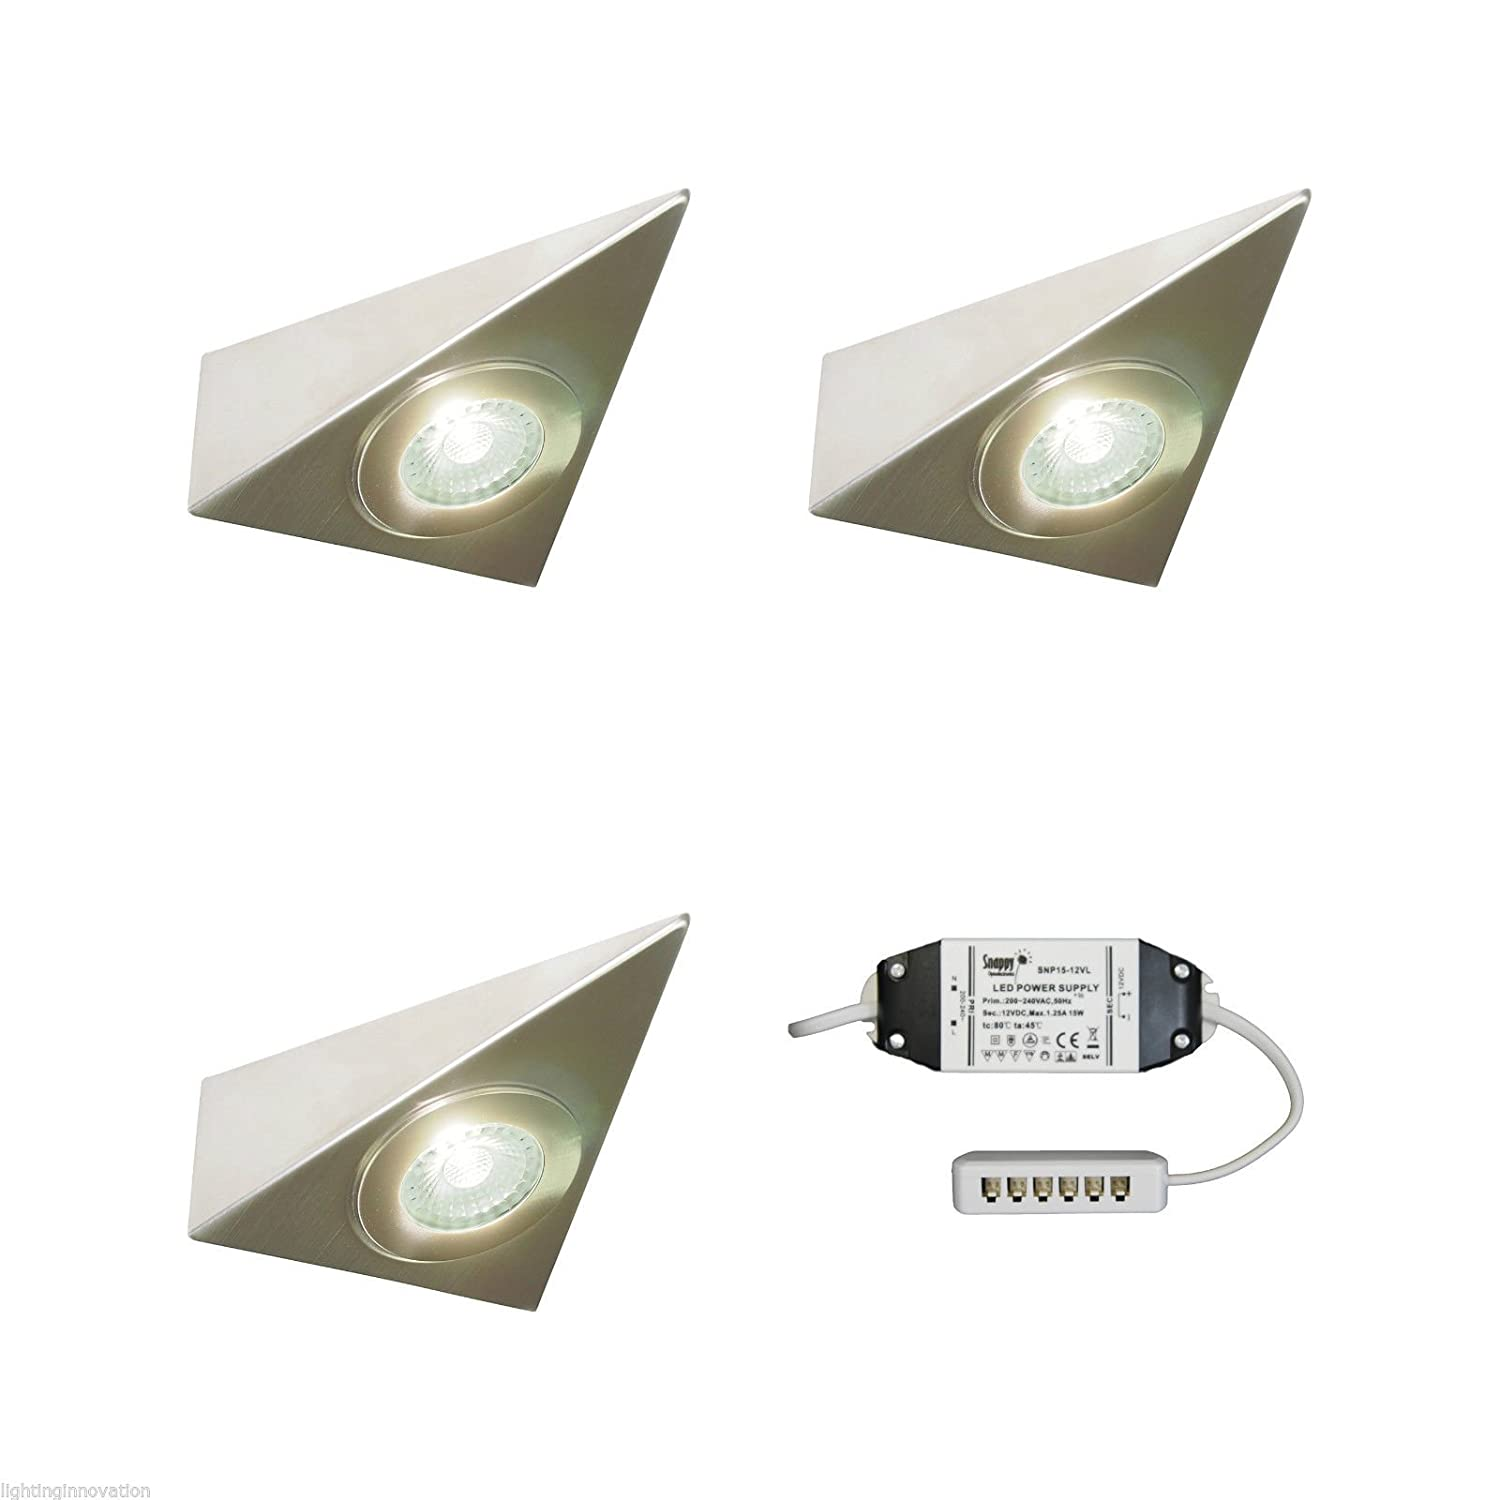 3 X KITCHEN UNDER CABINET CUPBOARD LED TRIANGLE LIGHT KIT POLARIS - VERY BRIGHT Lighting Innovations